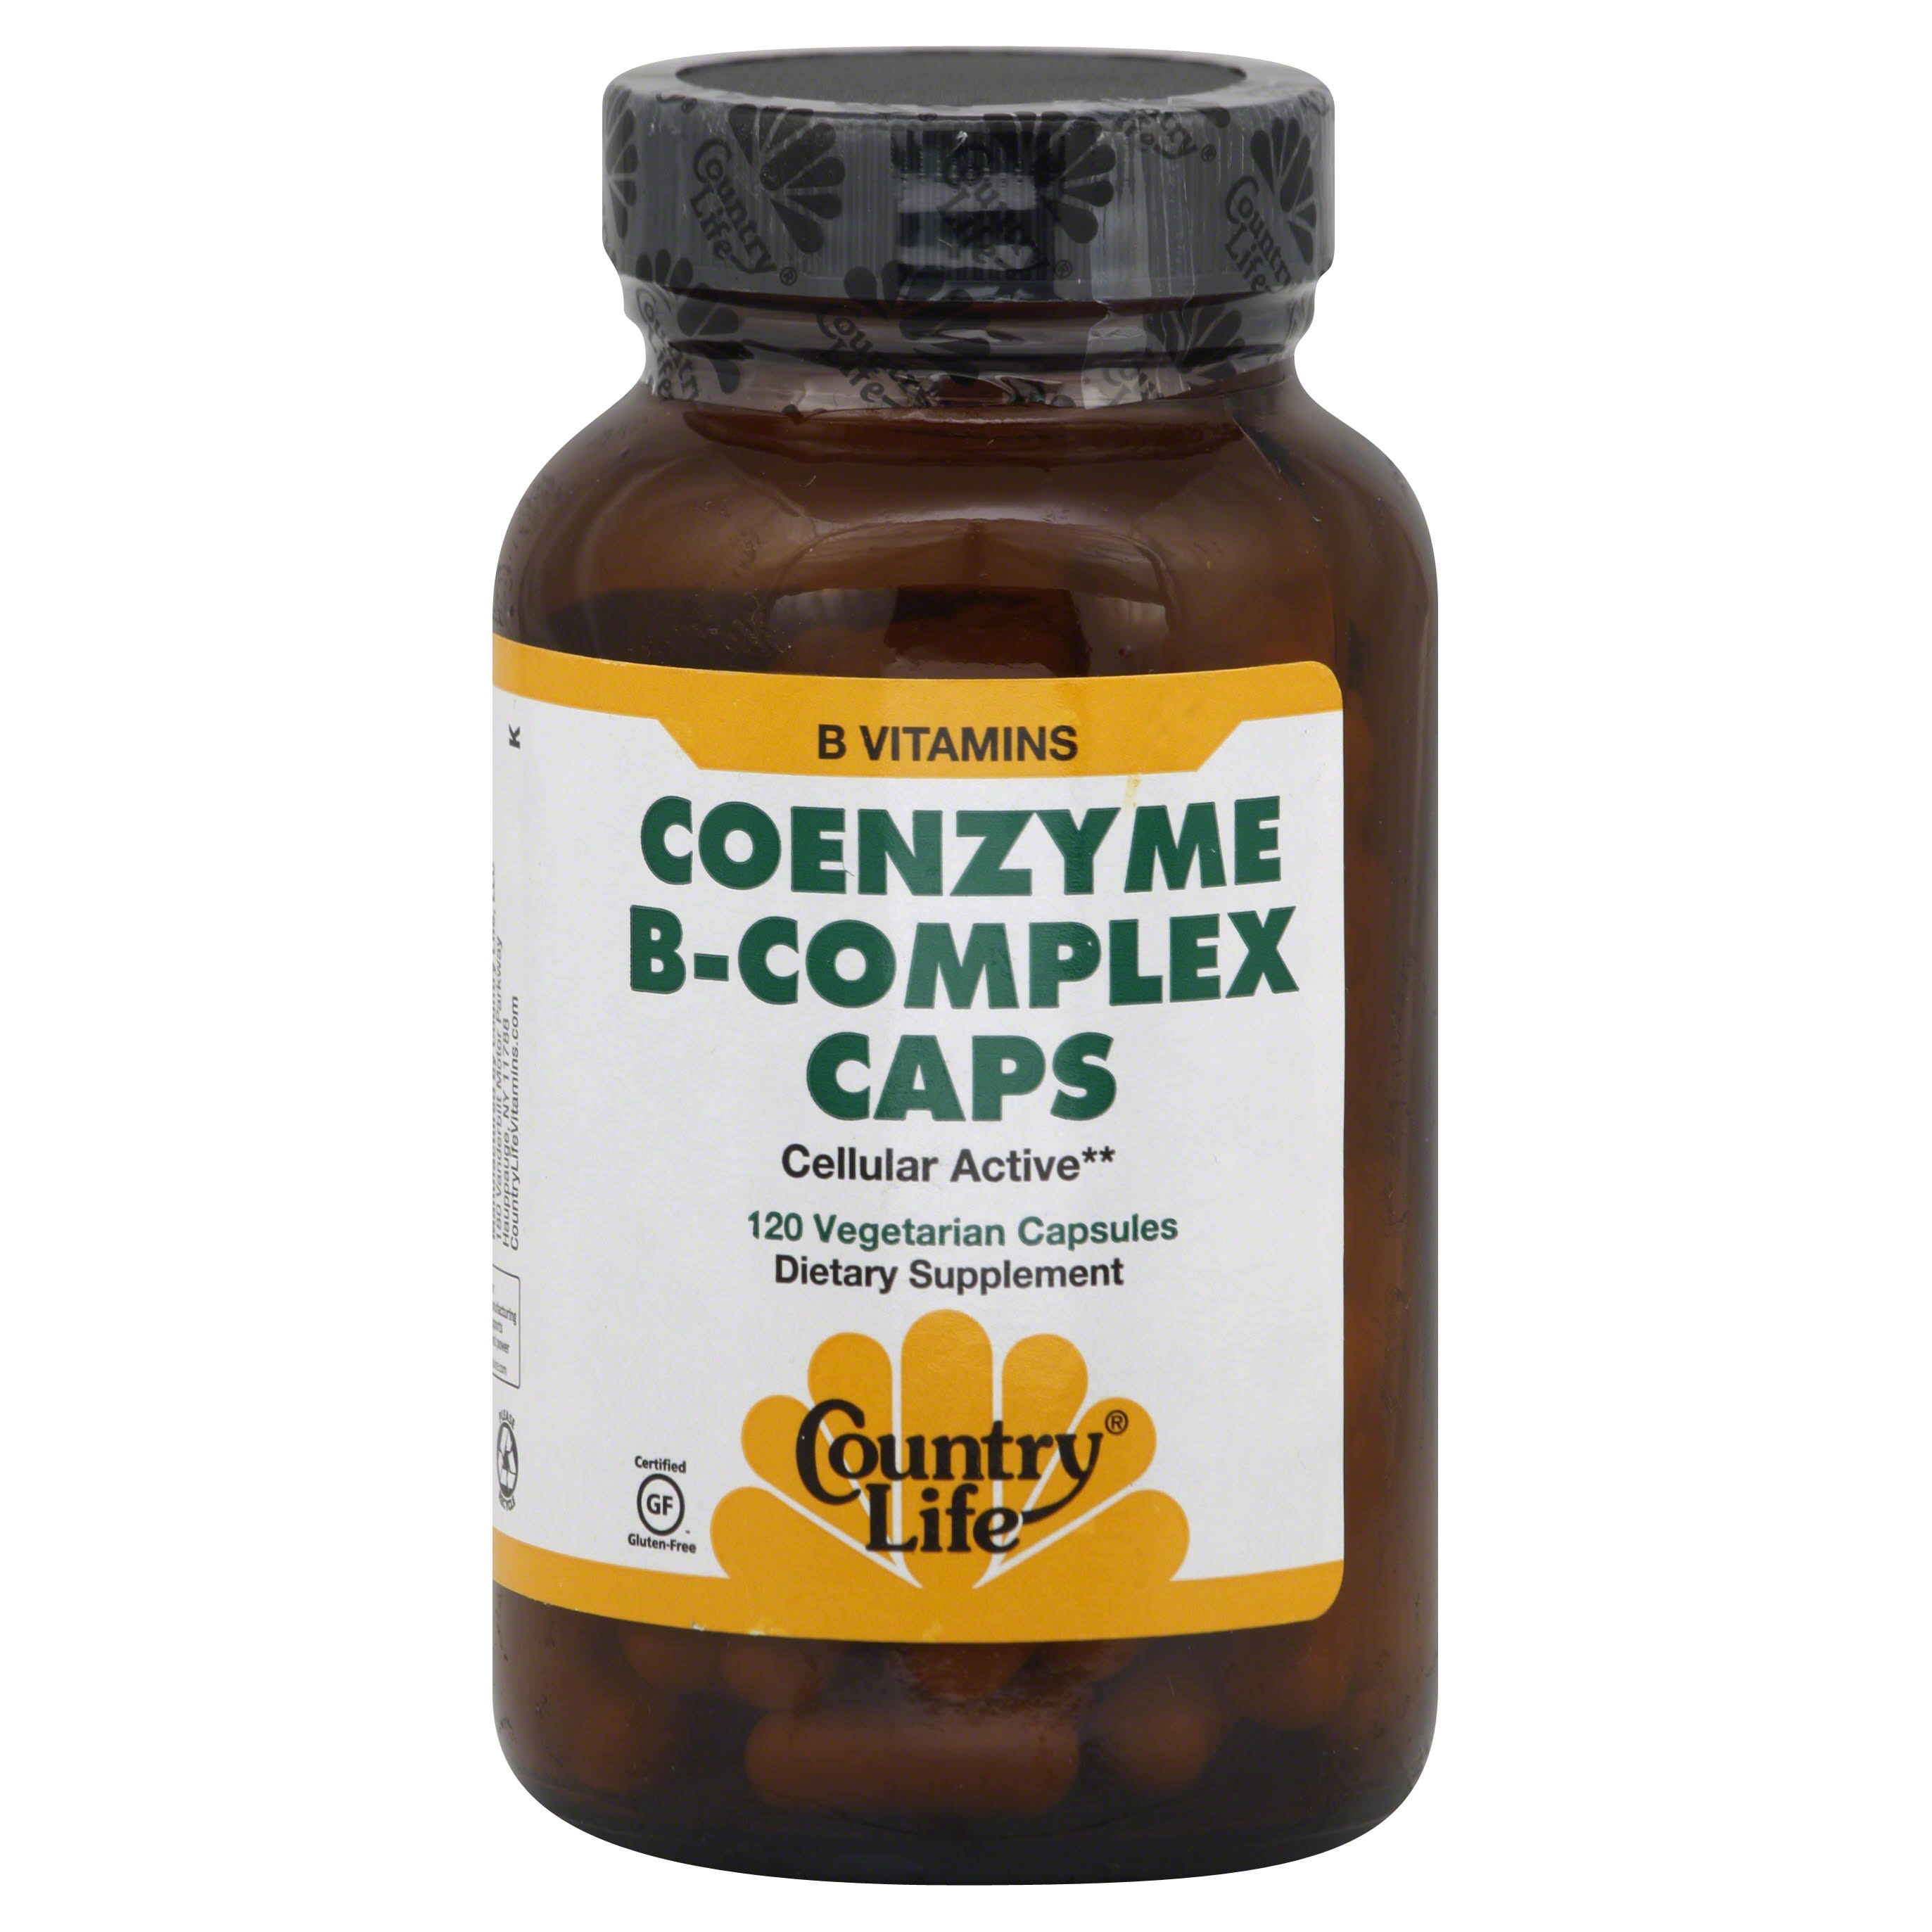 Country Life CoEnzyme B-Complex Caps - 120 Vegetarian Capsules